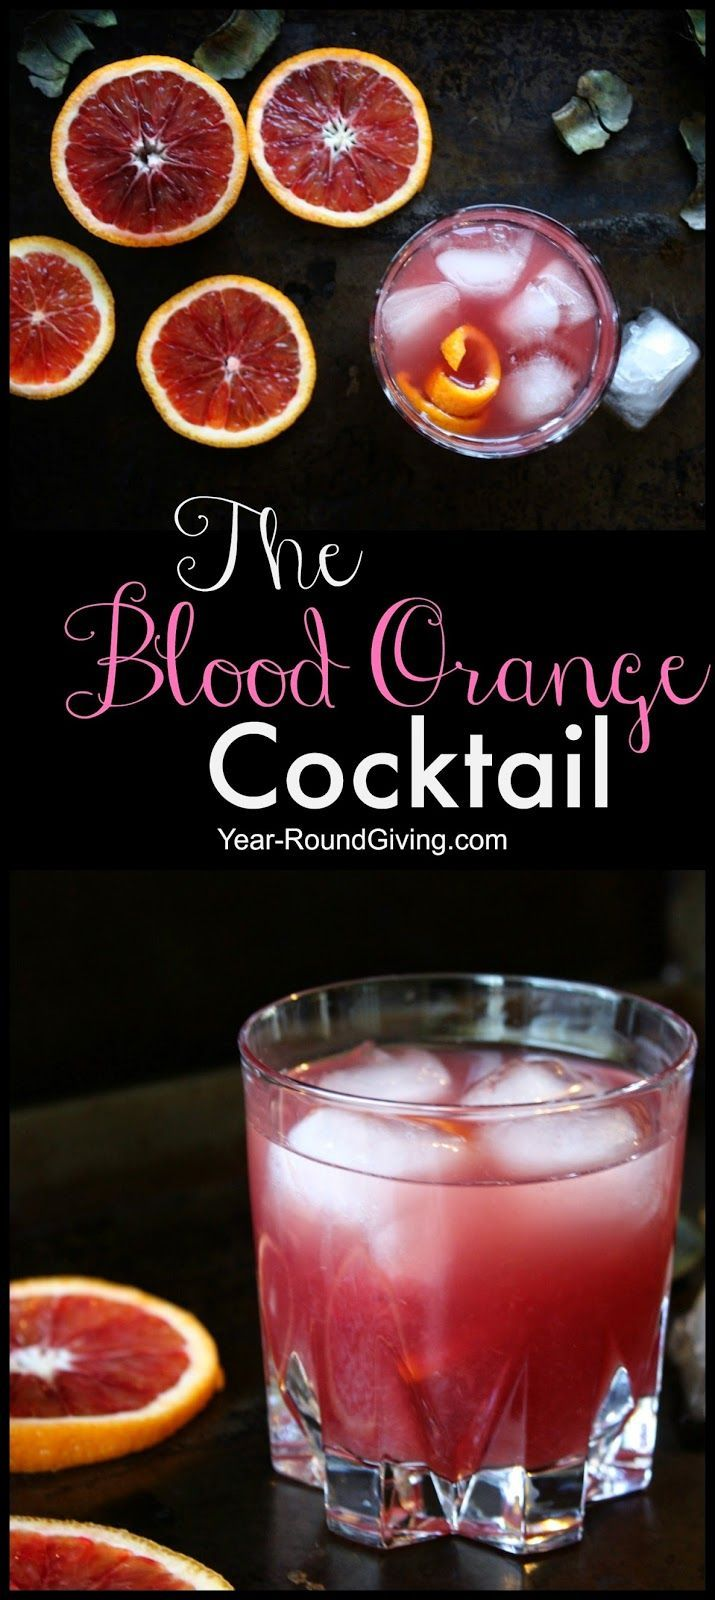 The Blood Orange Cocktail. This cocktail is absolutely stunning. The color is so gorgeous it has to taste good! The Grand Marnier blends so nicely with the natural juices and that pop of gold rum gives it a subtle reminder that, hey this is cocktail!